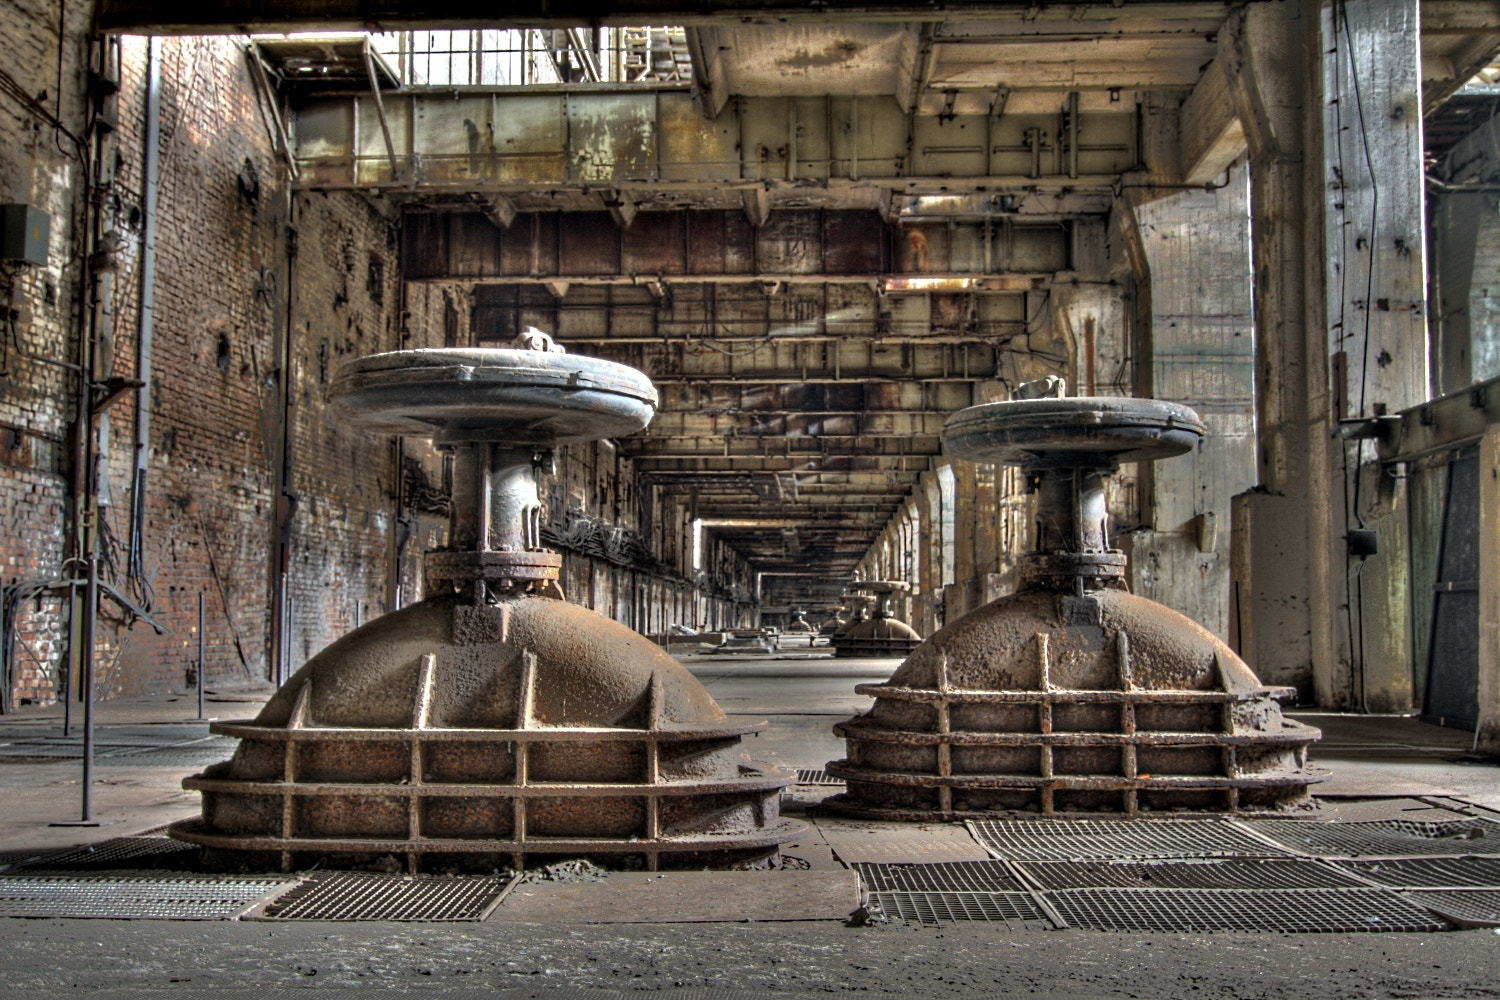 Photograph Derelict factory hall by Matthias Photography on 500px